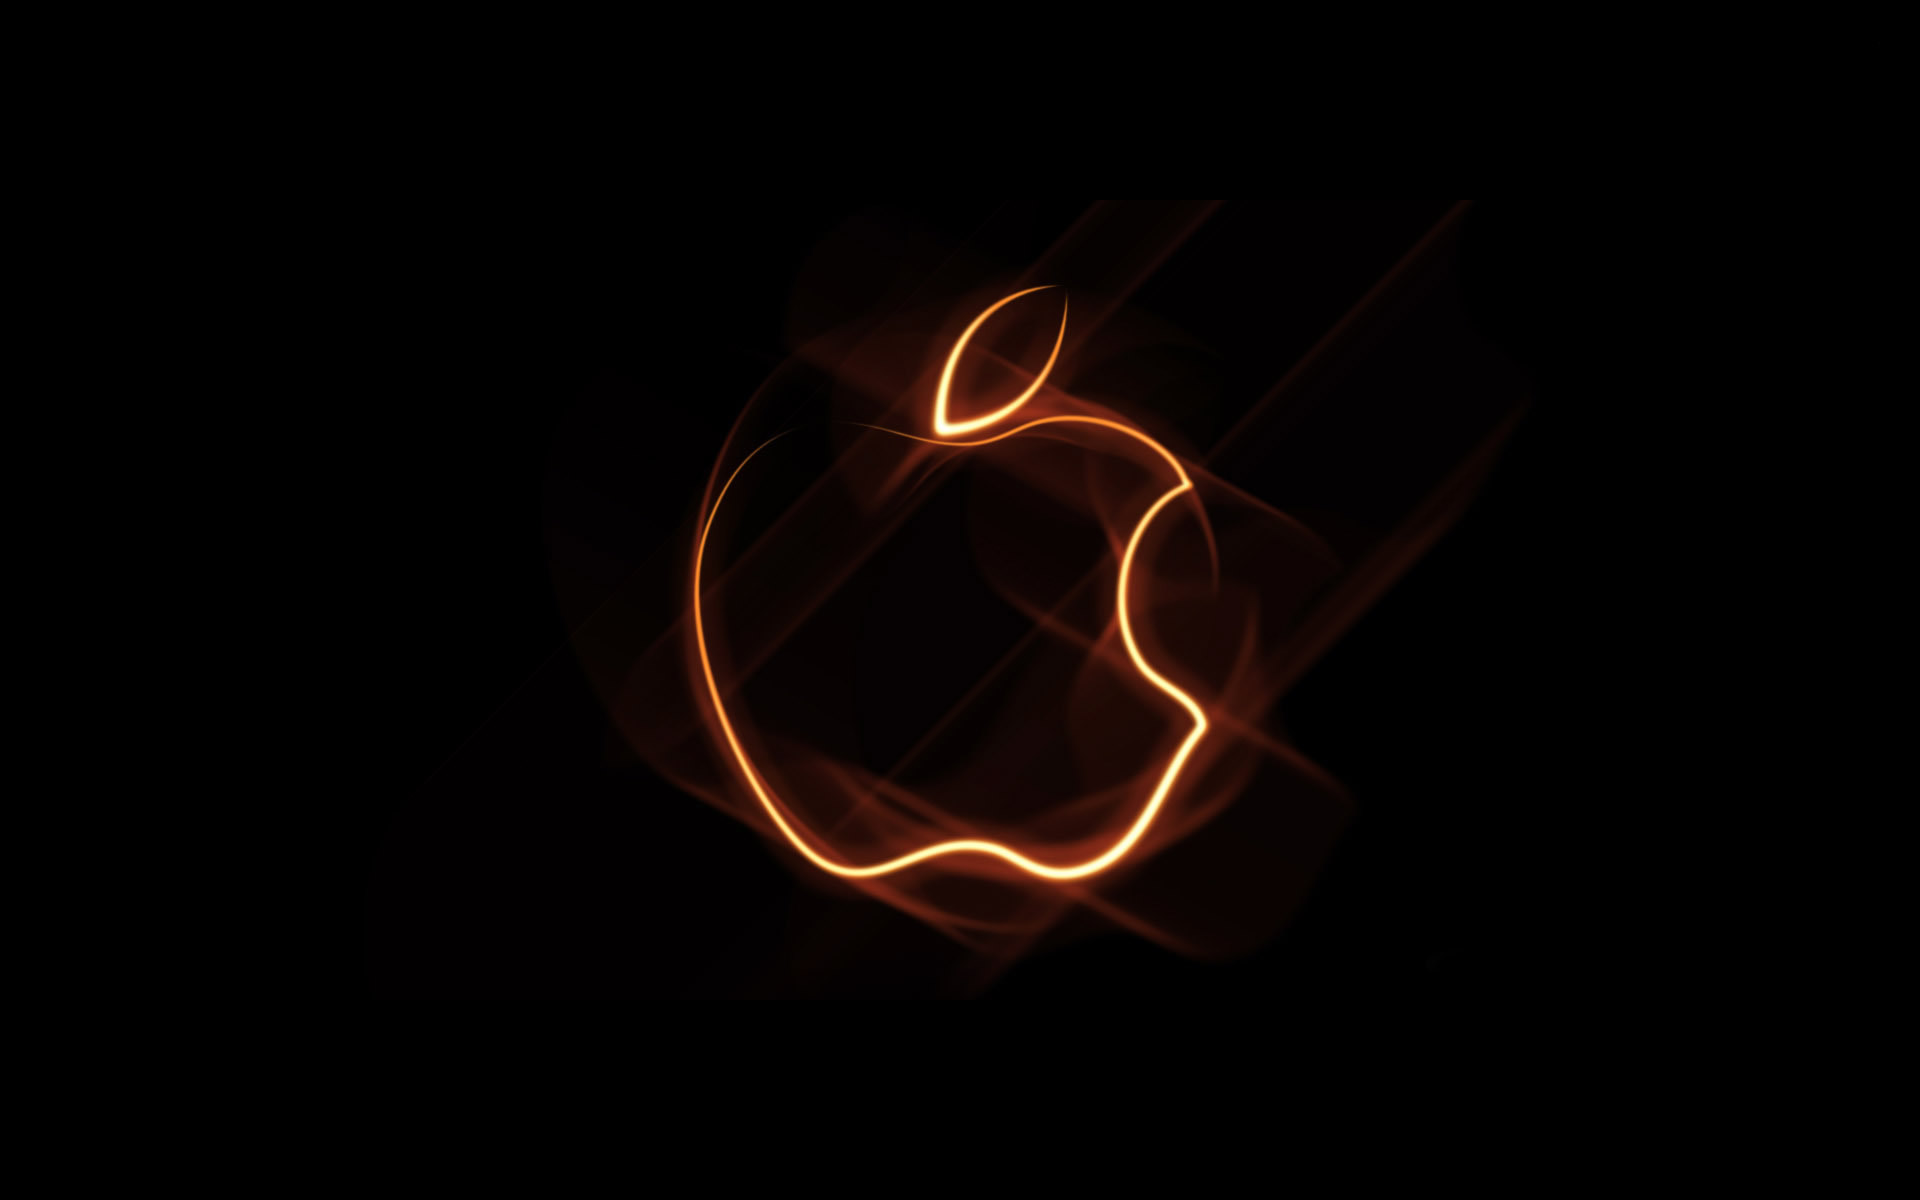 HD Apple Wallpapers 1080p Group (88+)